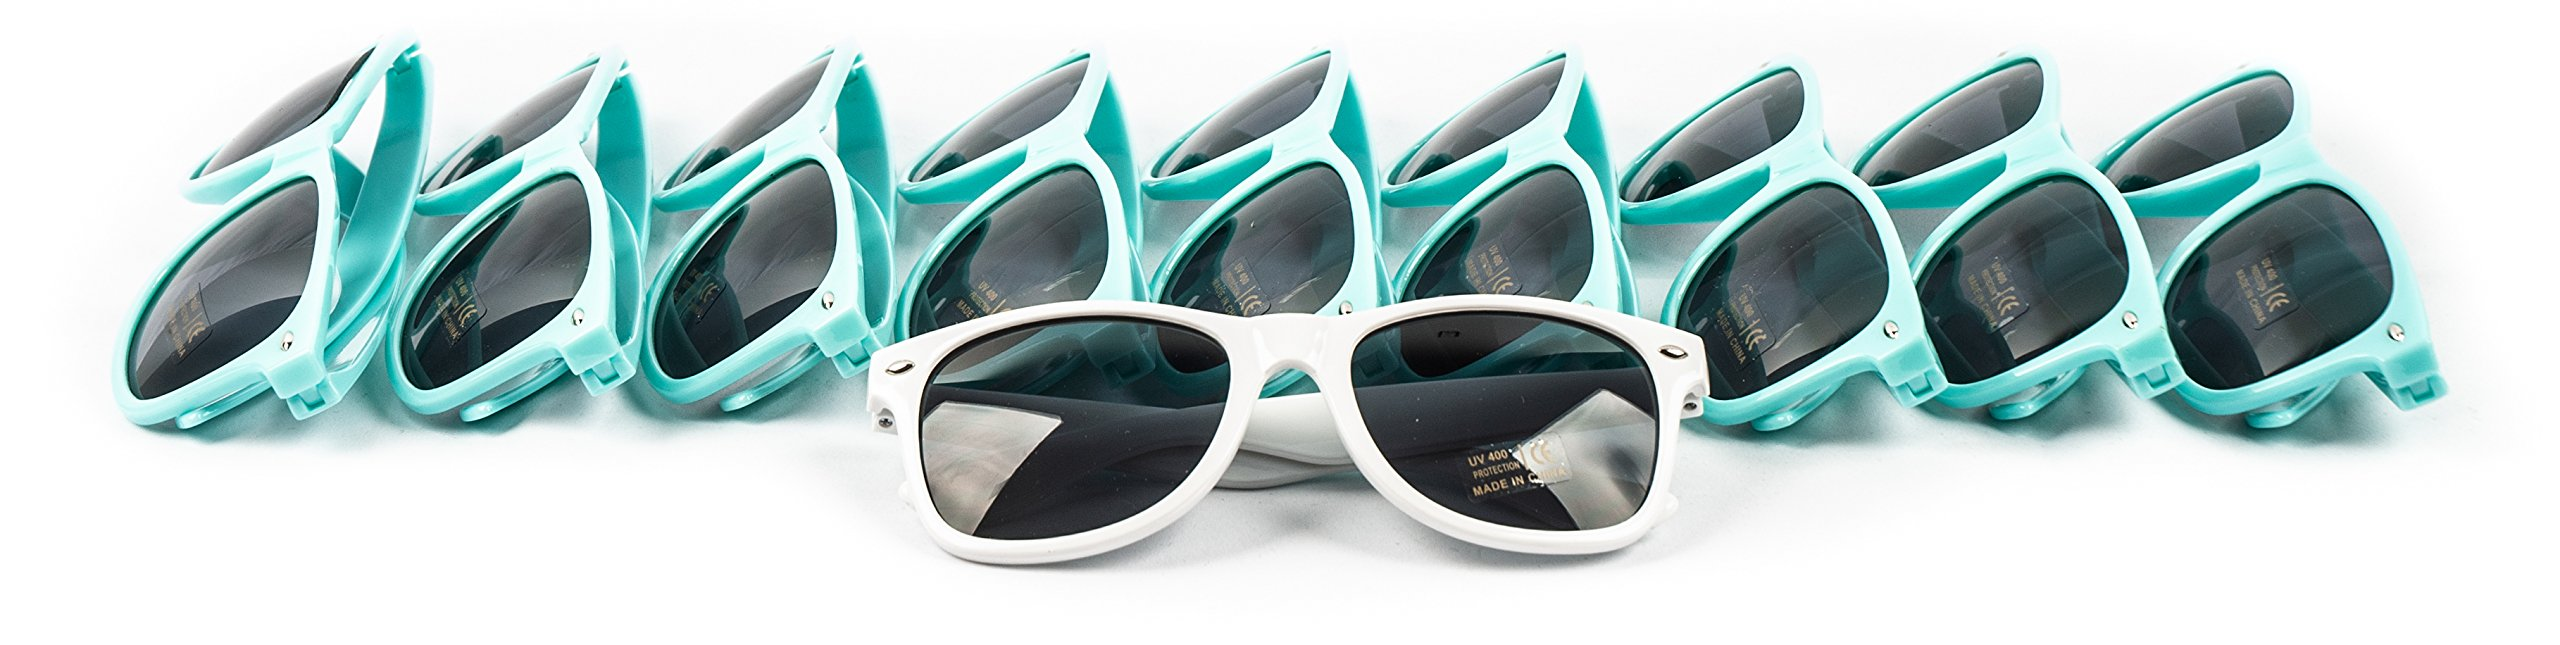 10 Piece Set of Bride Tribe and Bride Sunglasses, Perfect for Bachelorette Parties, Weddings, and Showers! (Turquoise)